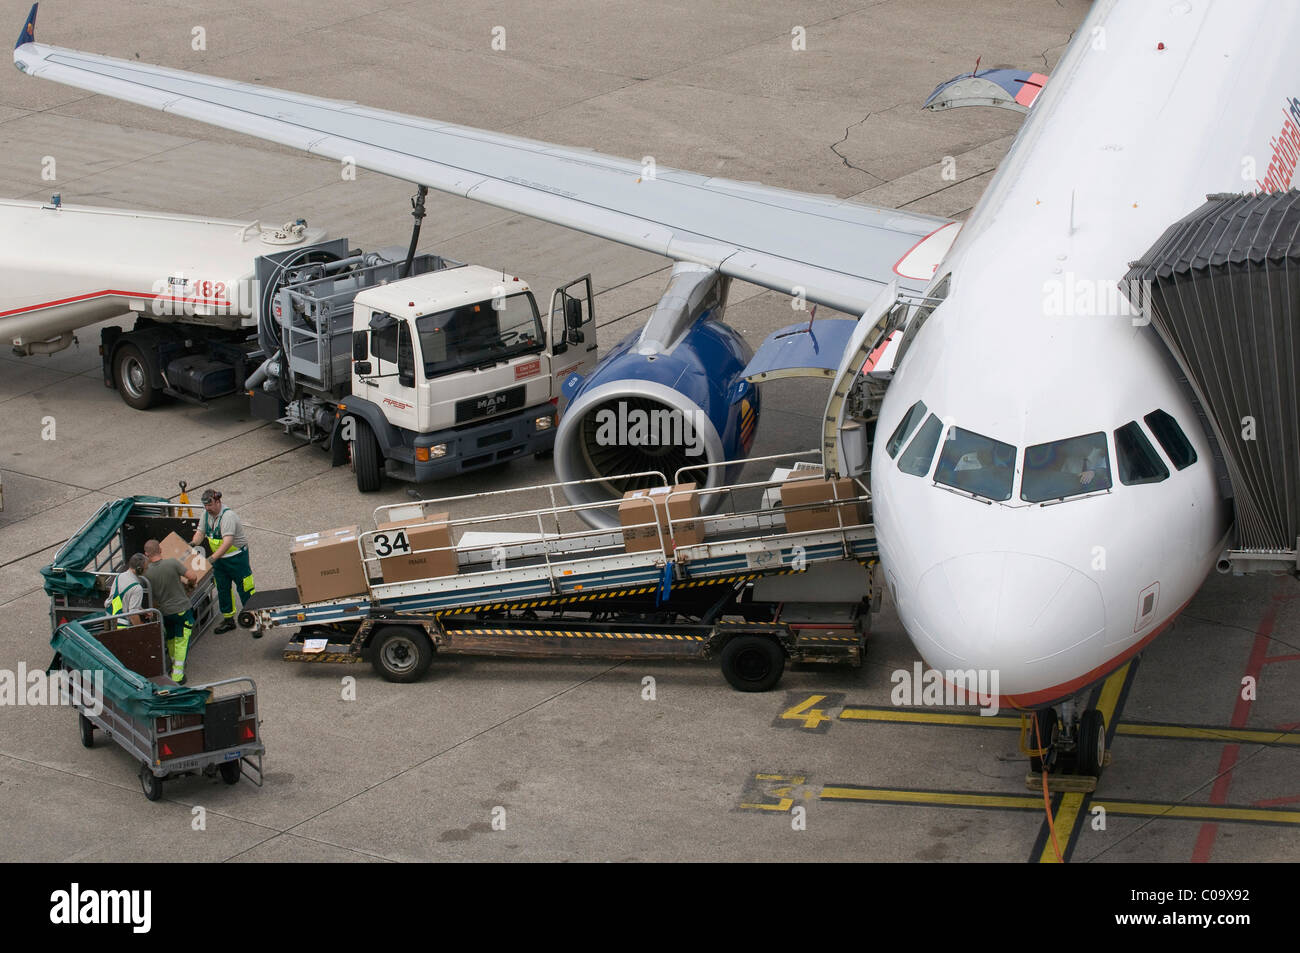 Airplane being refueled and loaded on the manoeuvering area, air cargo, Duesseldorf Airport, North Rhine-Westphalia - Stock Image